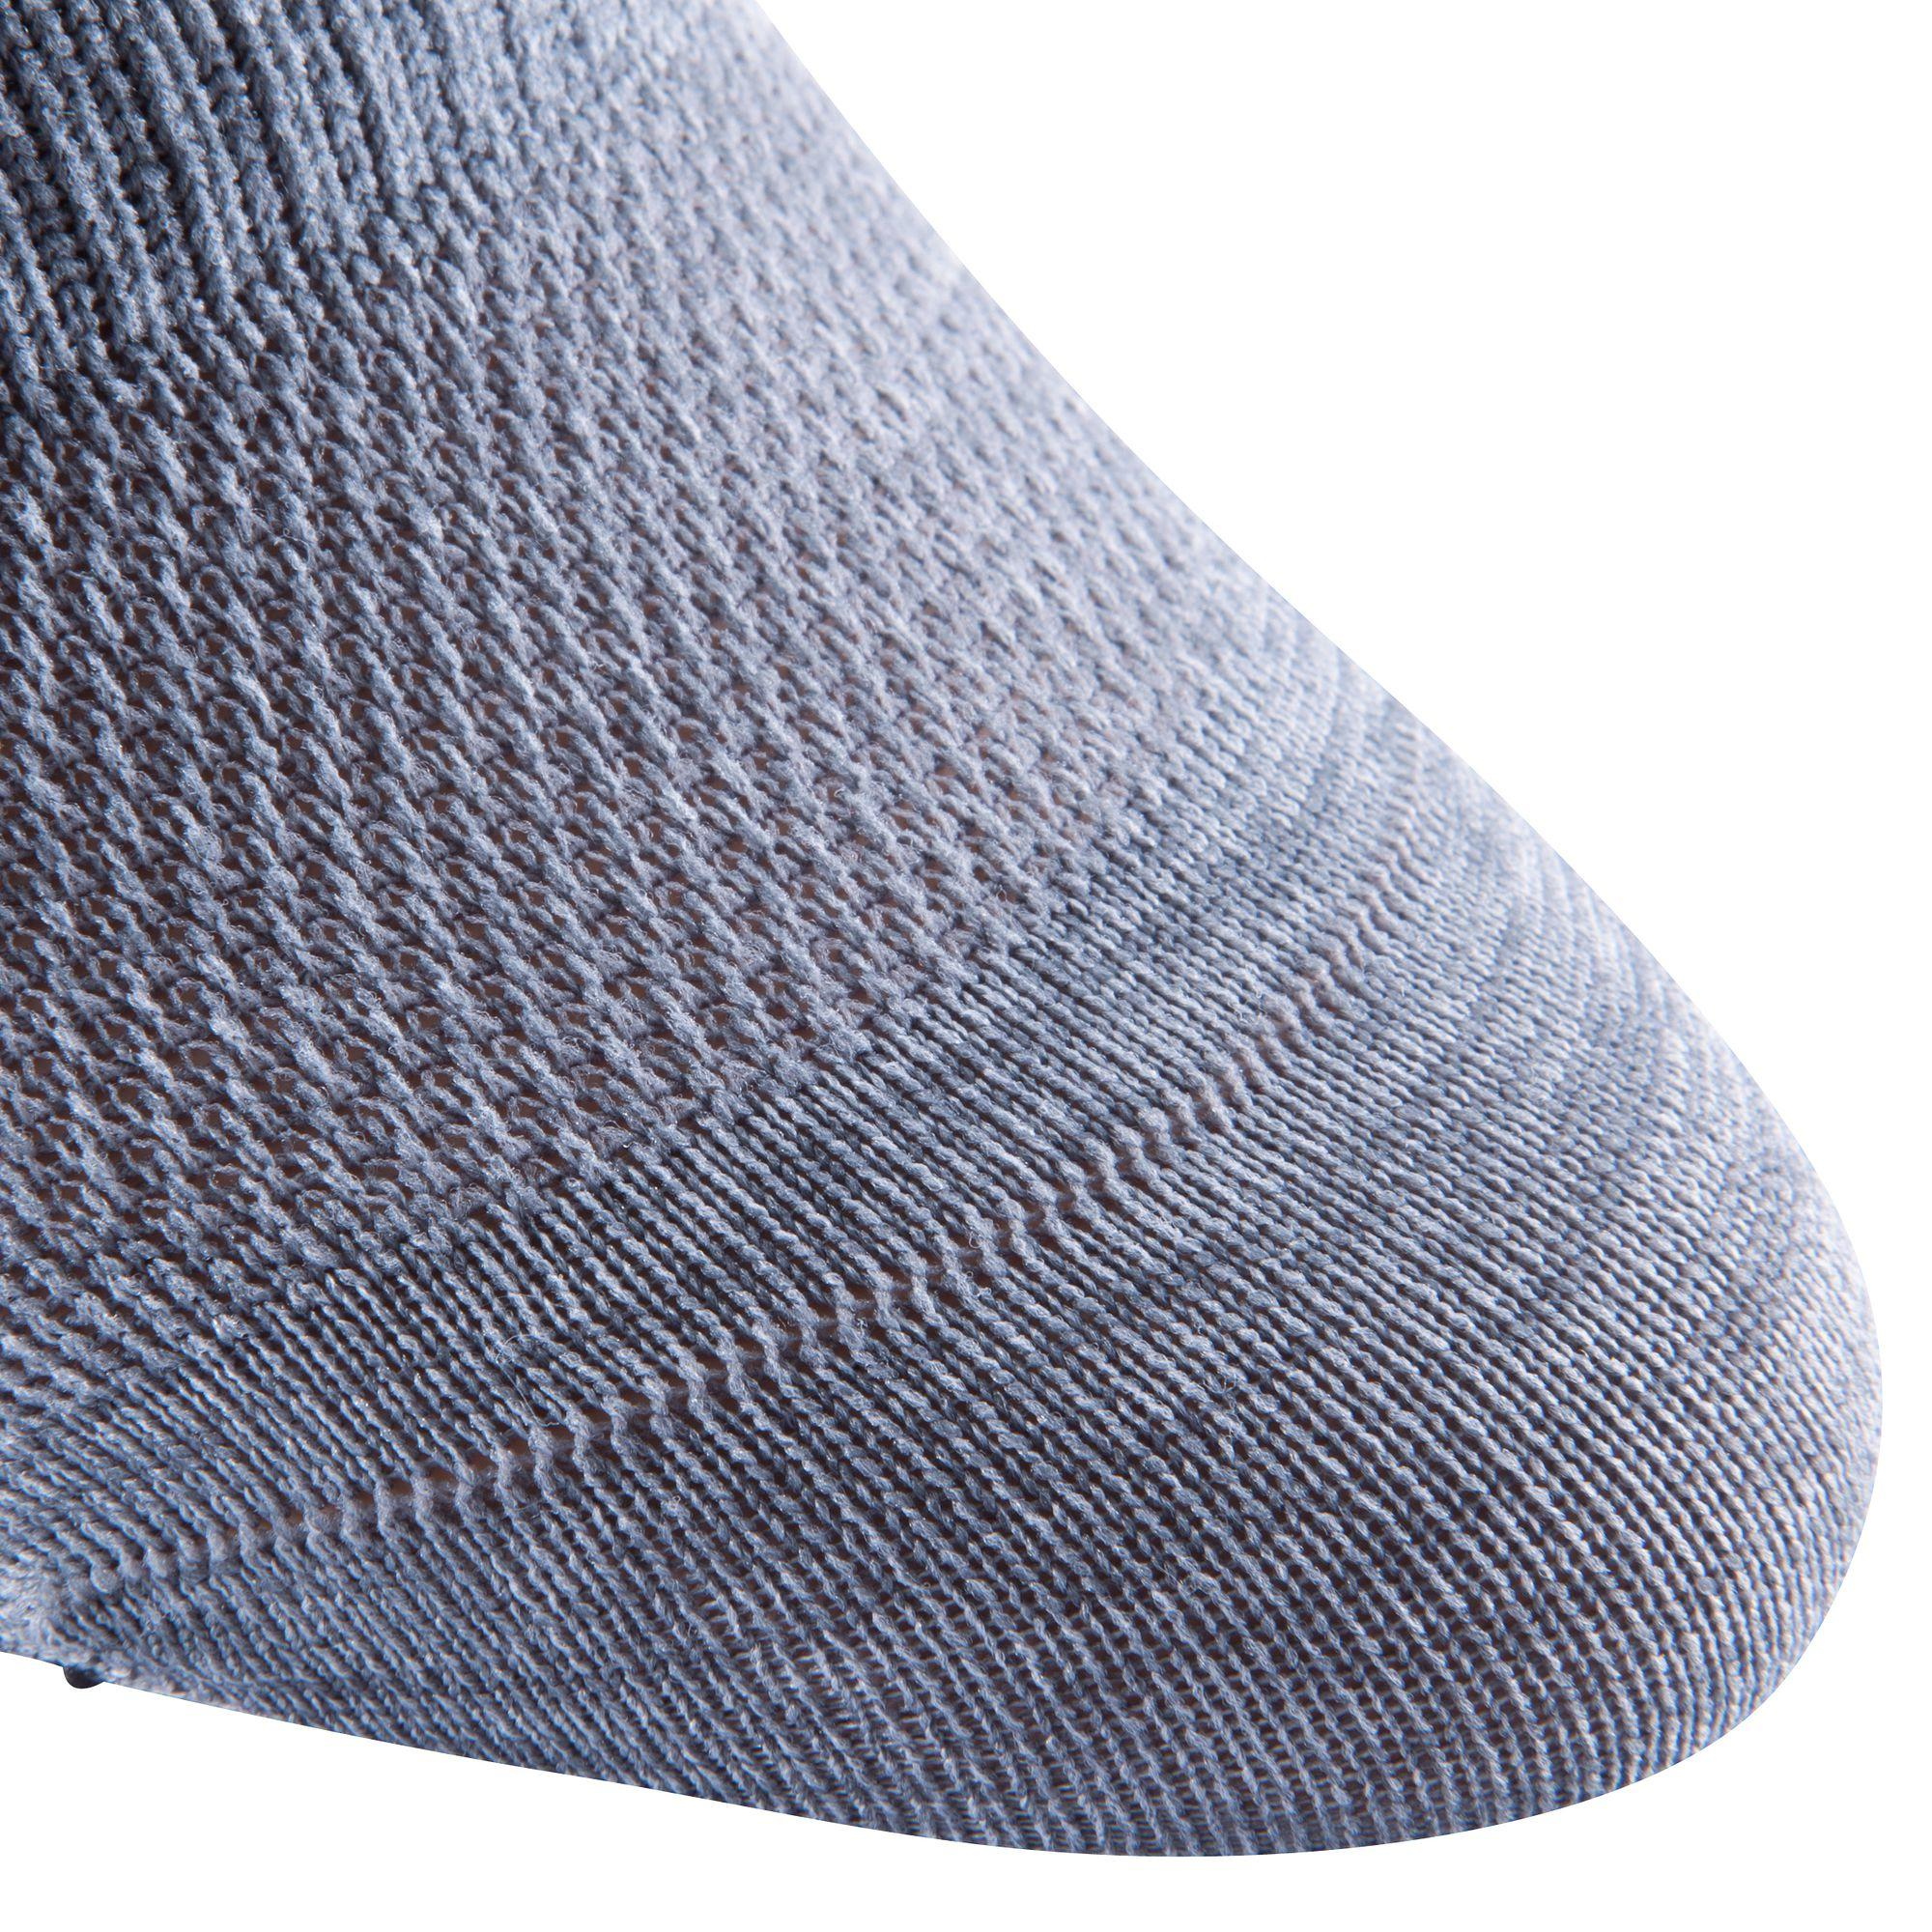 Non-Slip Gentle Gym & Pilates Socks - Grey